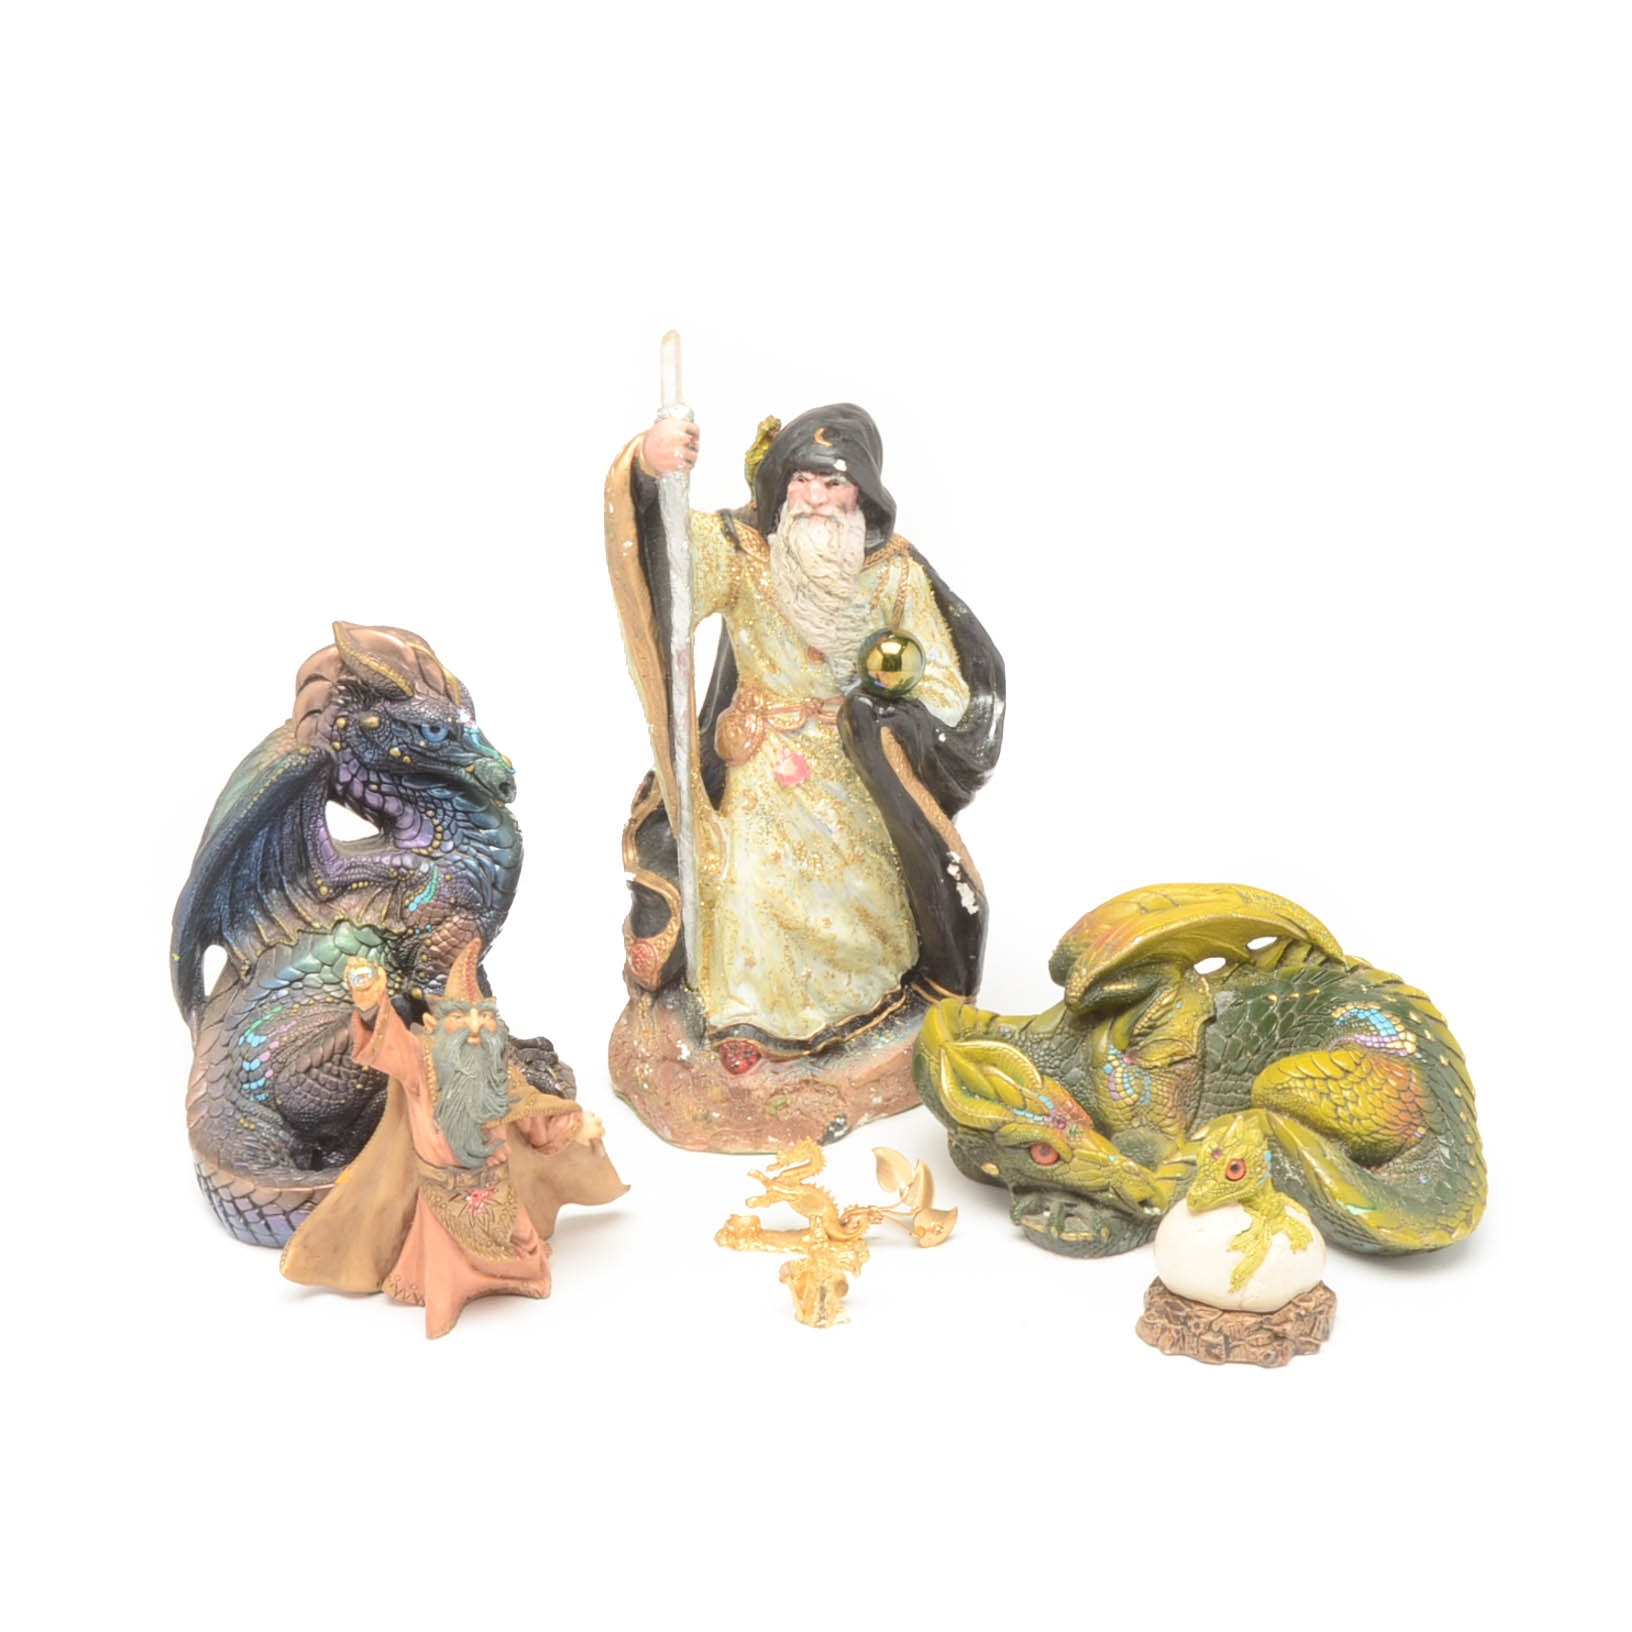 Collection of Fantasy Figurines